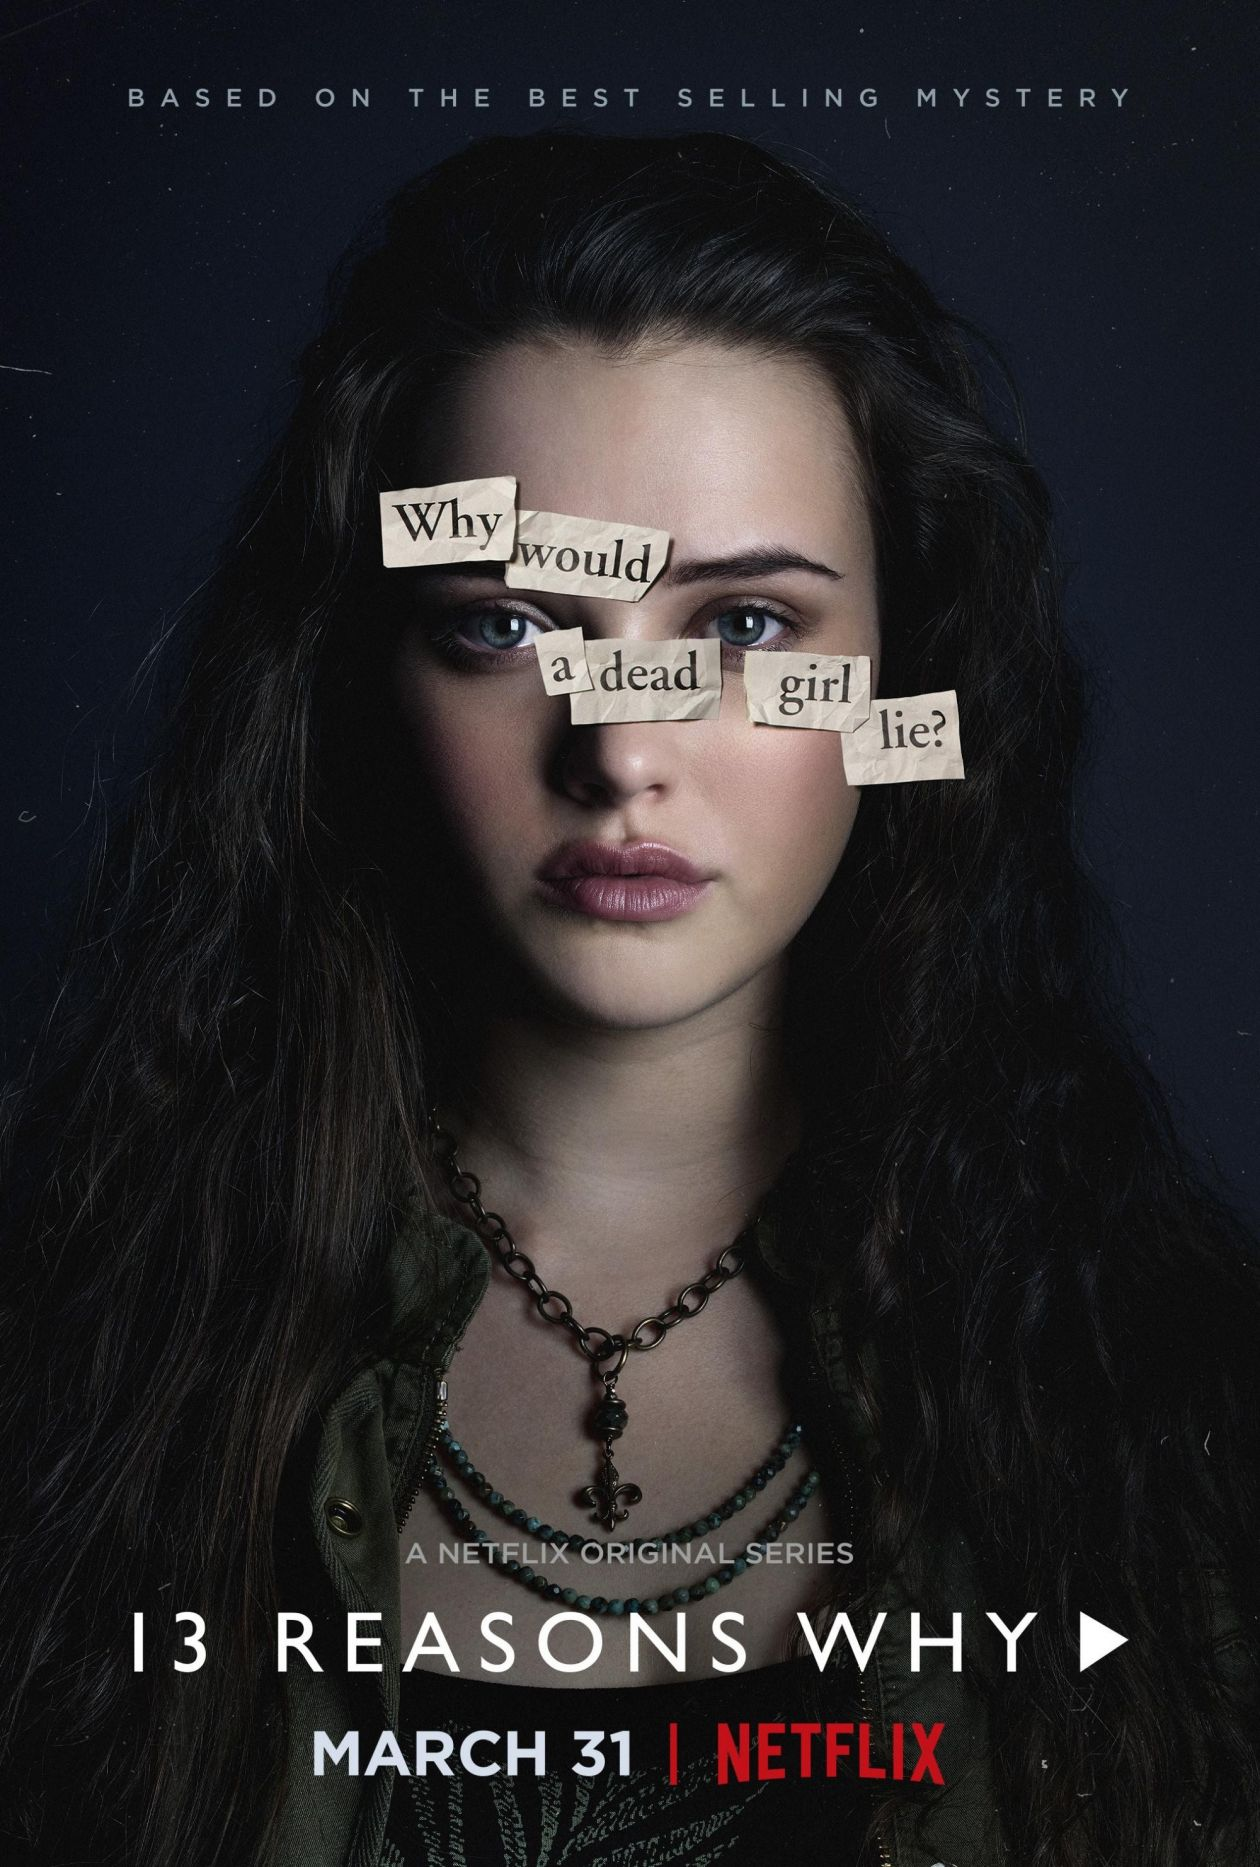 Katherine Langford | 13 Reasons Why : Hannah Baker | NETFLIX 2017